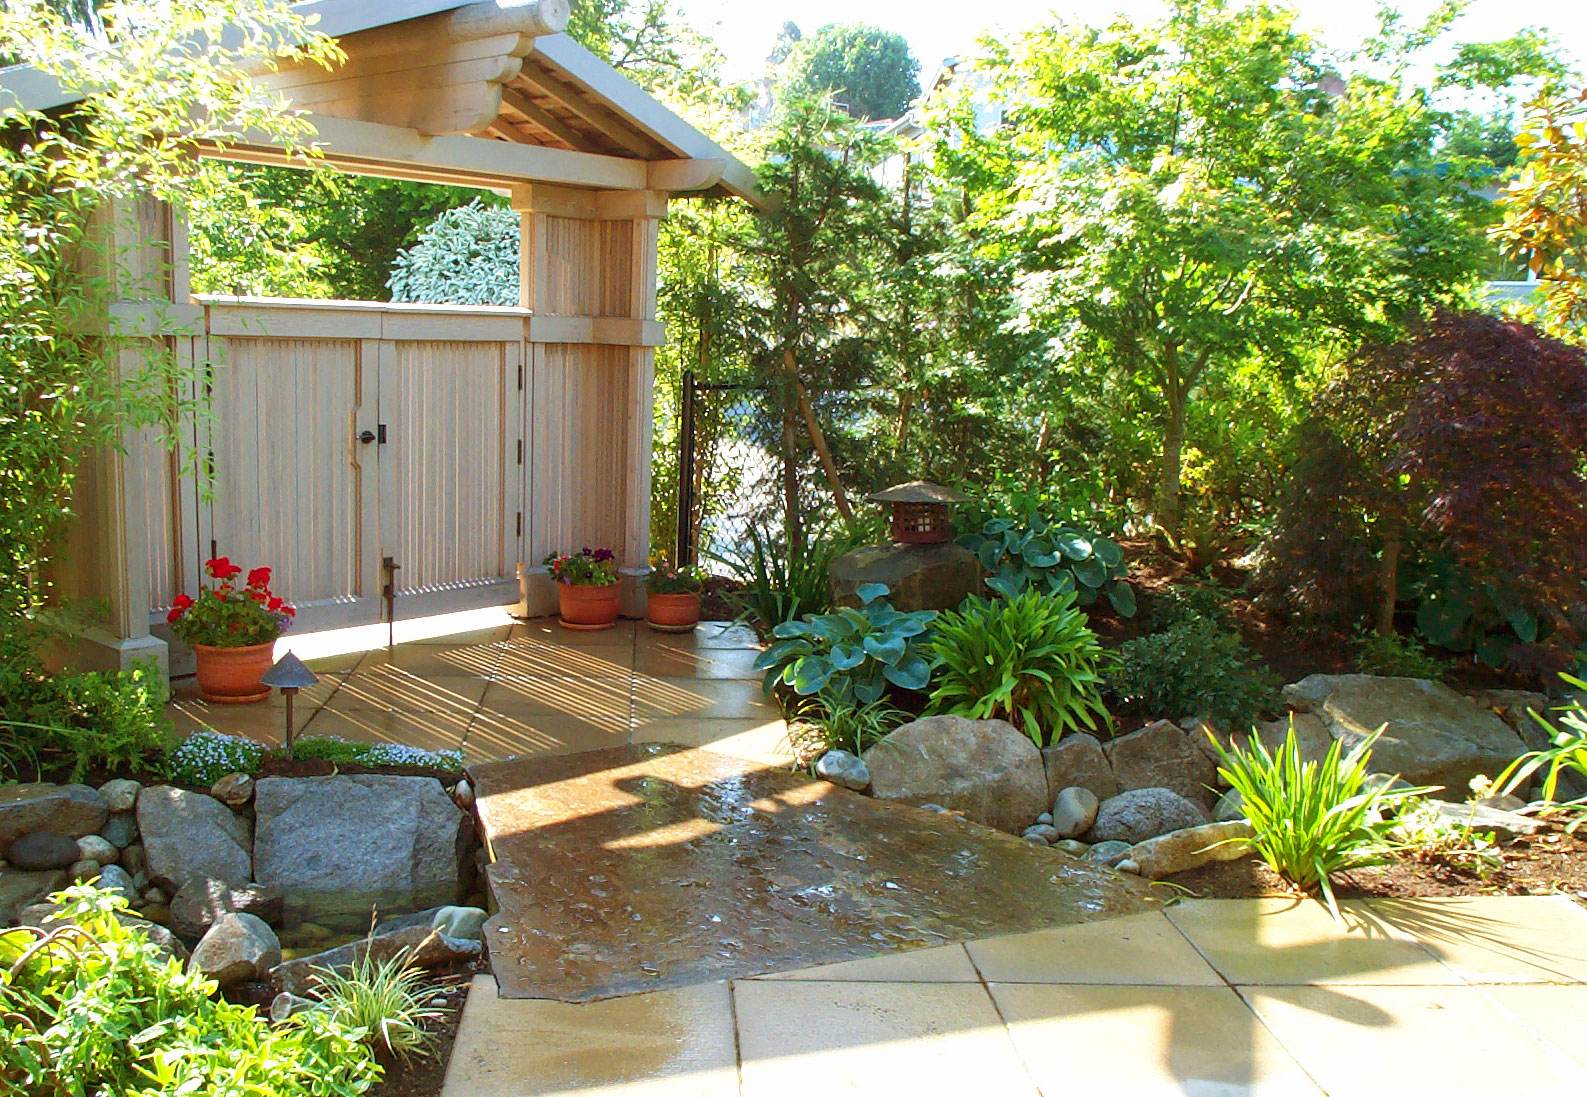 House garden designs asian style landscape northwest home for Japanese garden backyard designs